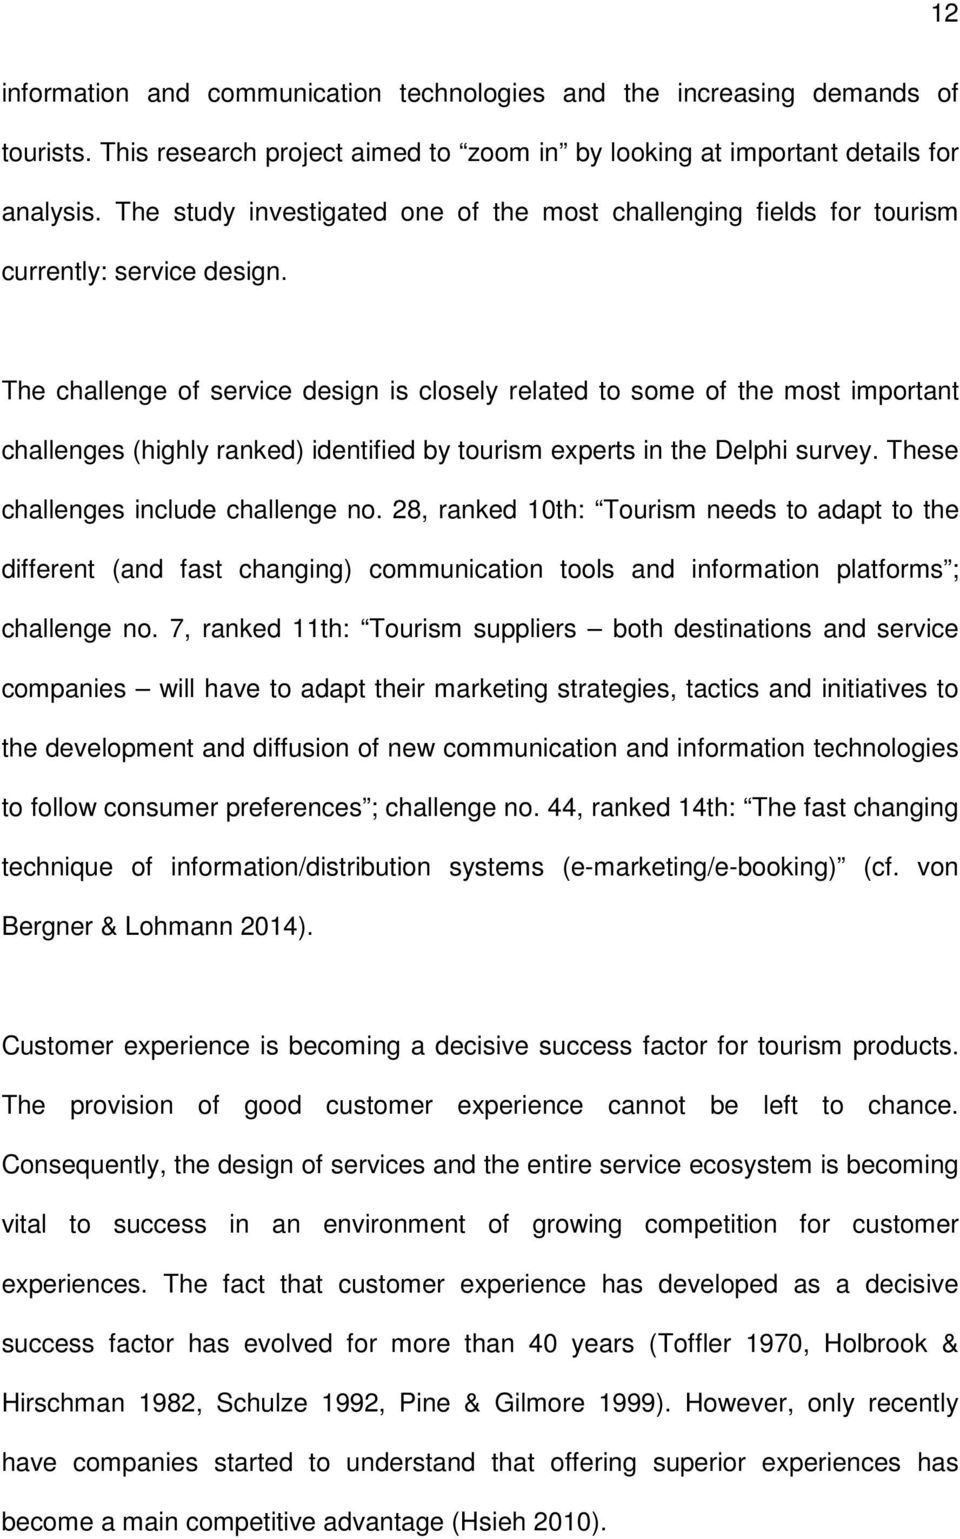 The challenge of service design is closely related to some of the most important challenges (highly ranked) identified by tourism experts in the Delphi survey. These challenges include challenge no.